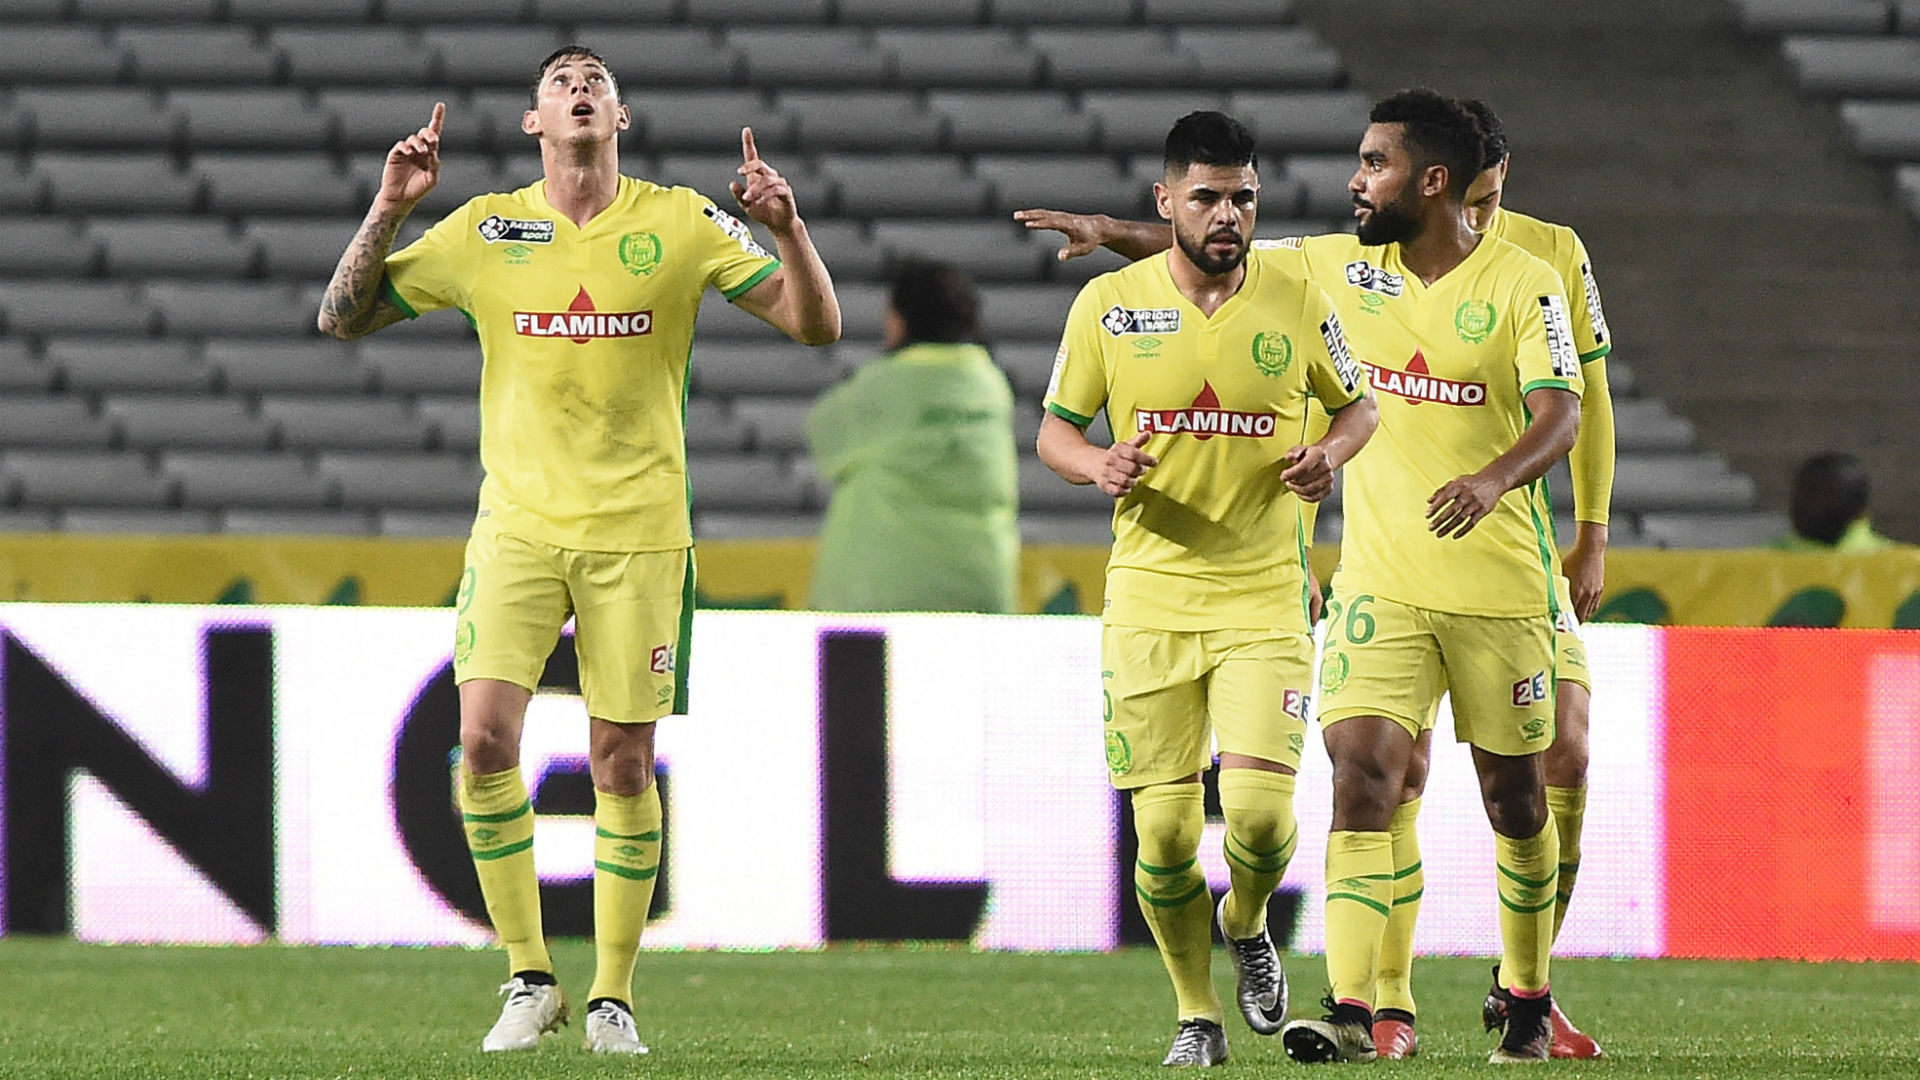 De Franse Connectie: Emiliano Sala